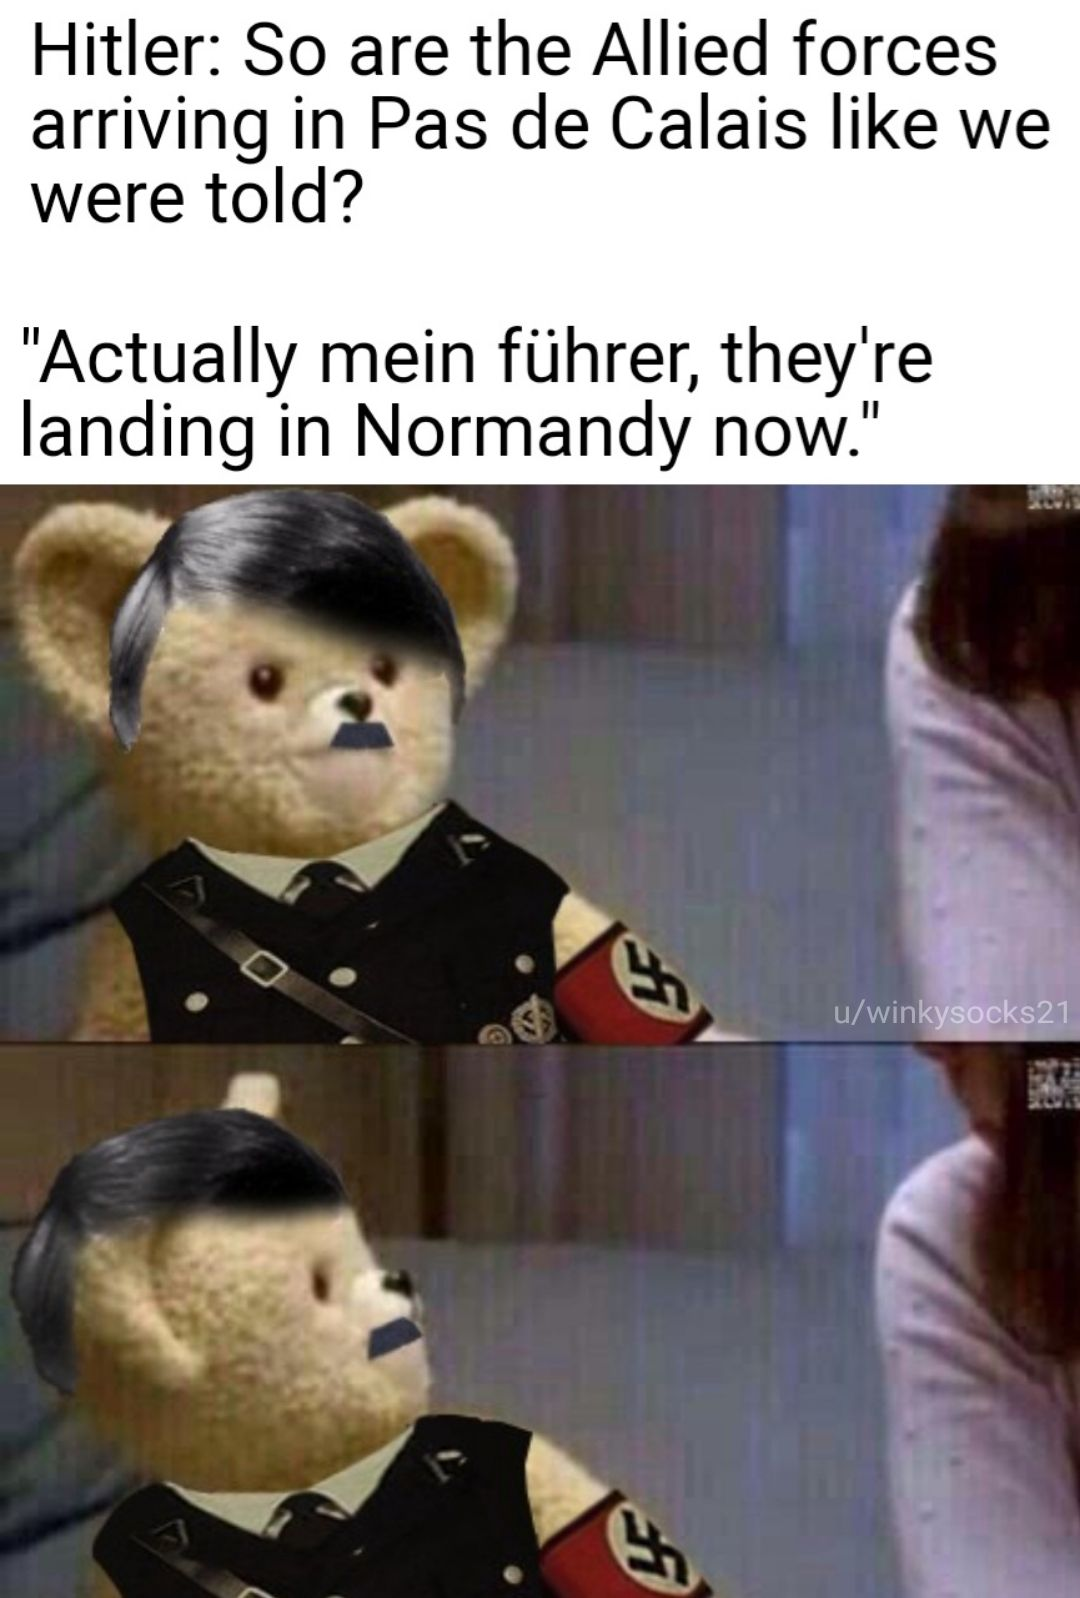 You heard him right, Normandy.